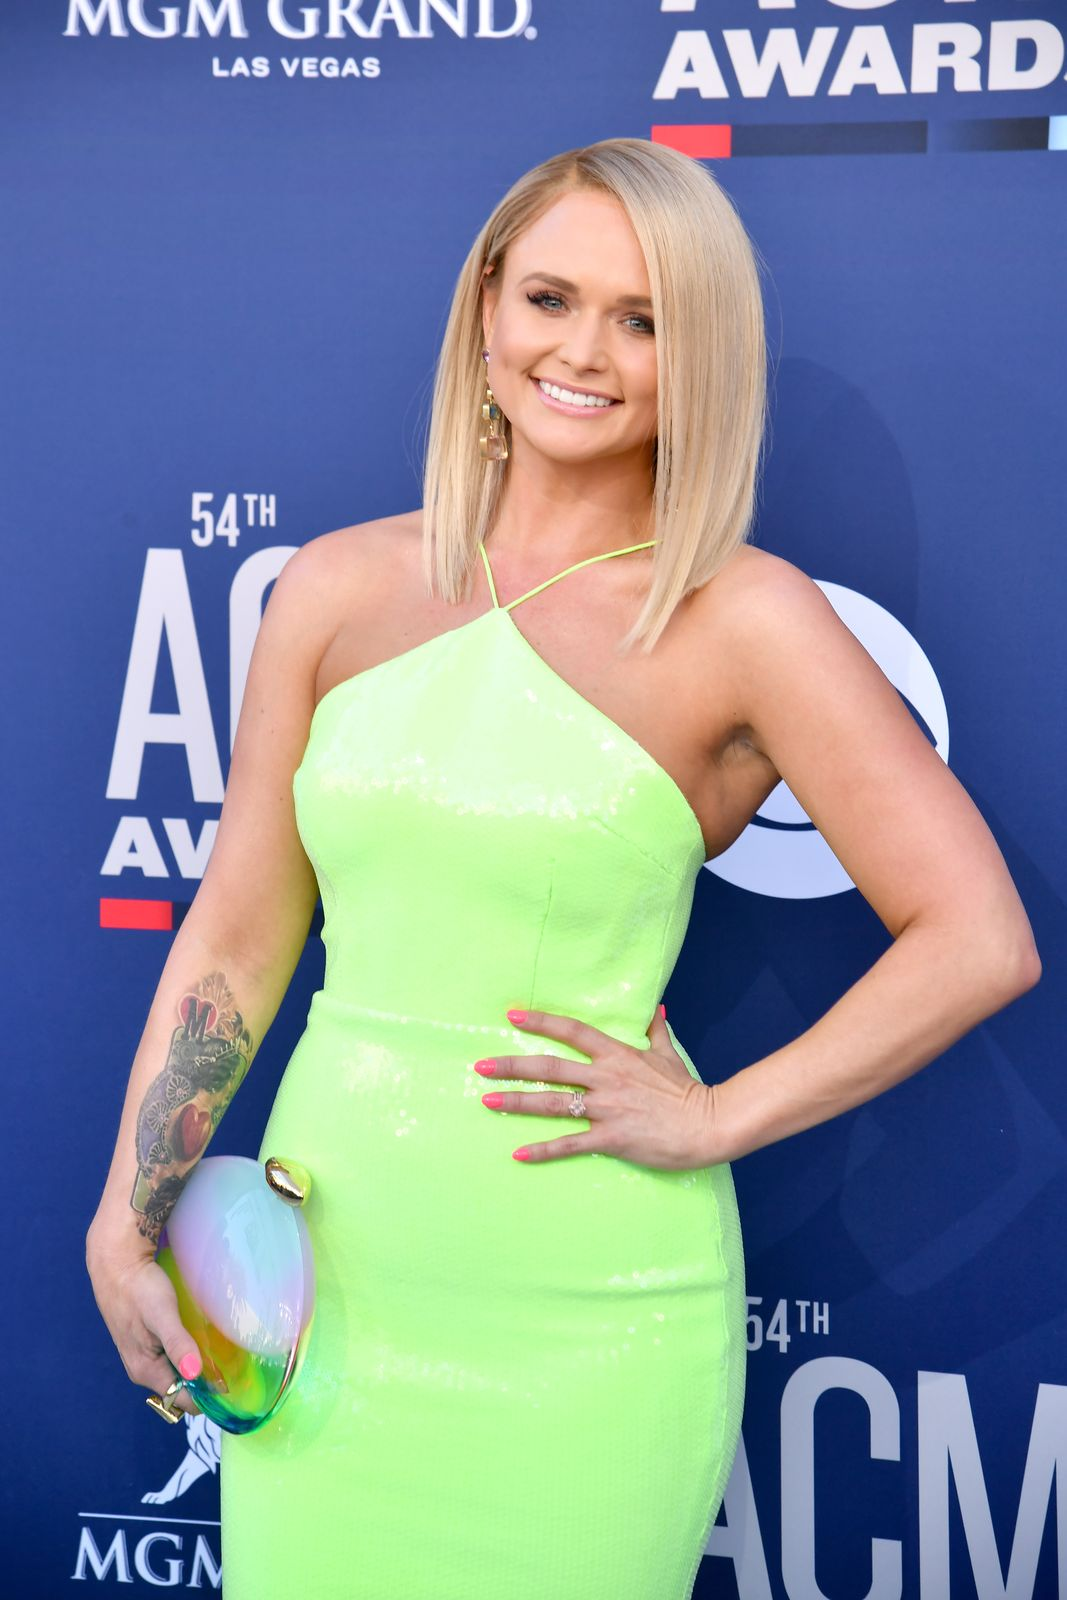 Miranda Lambert at the 54th Academy Of Country Music Awards at MGM Grand Hotel & Casino on April 07, 2019 in Las Vegas, Nevada. | Photo: Getty Images